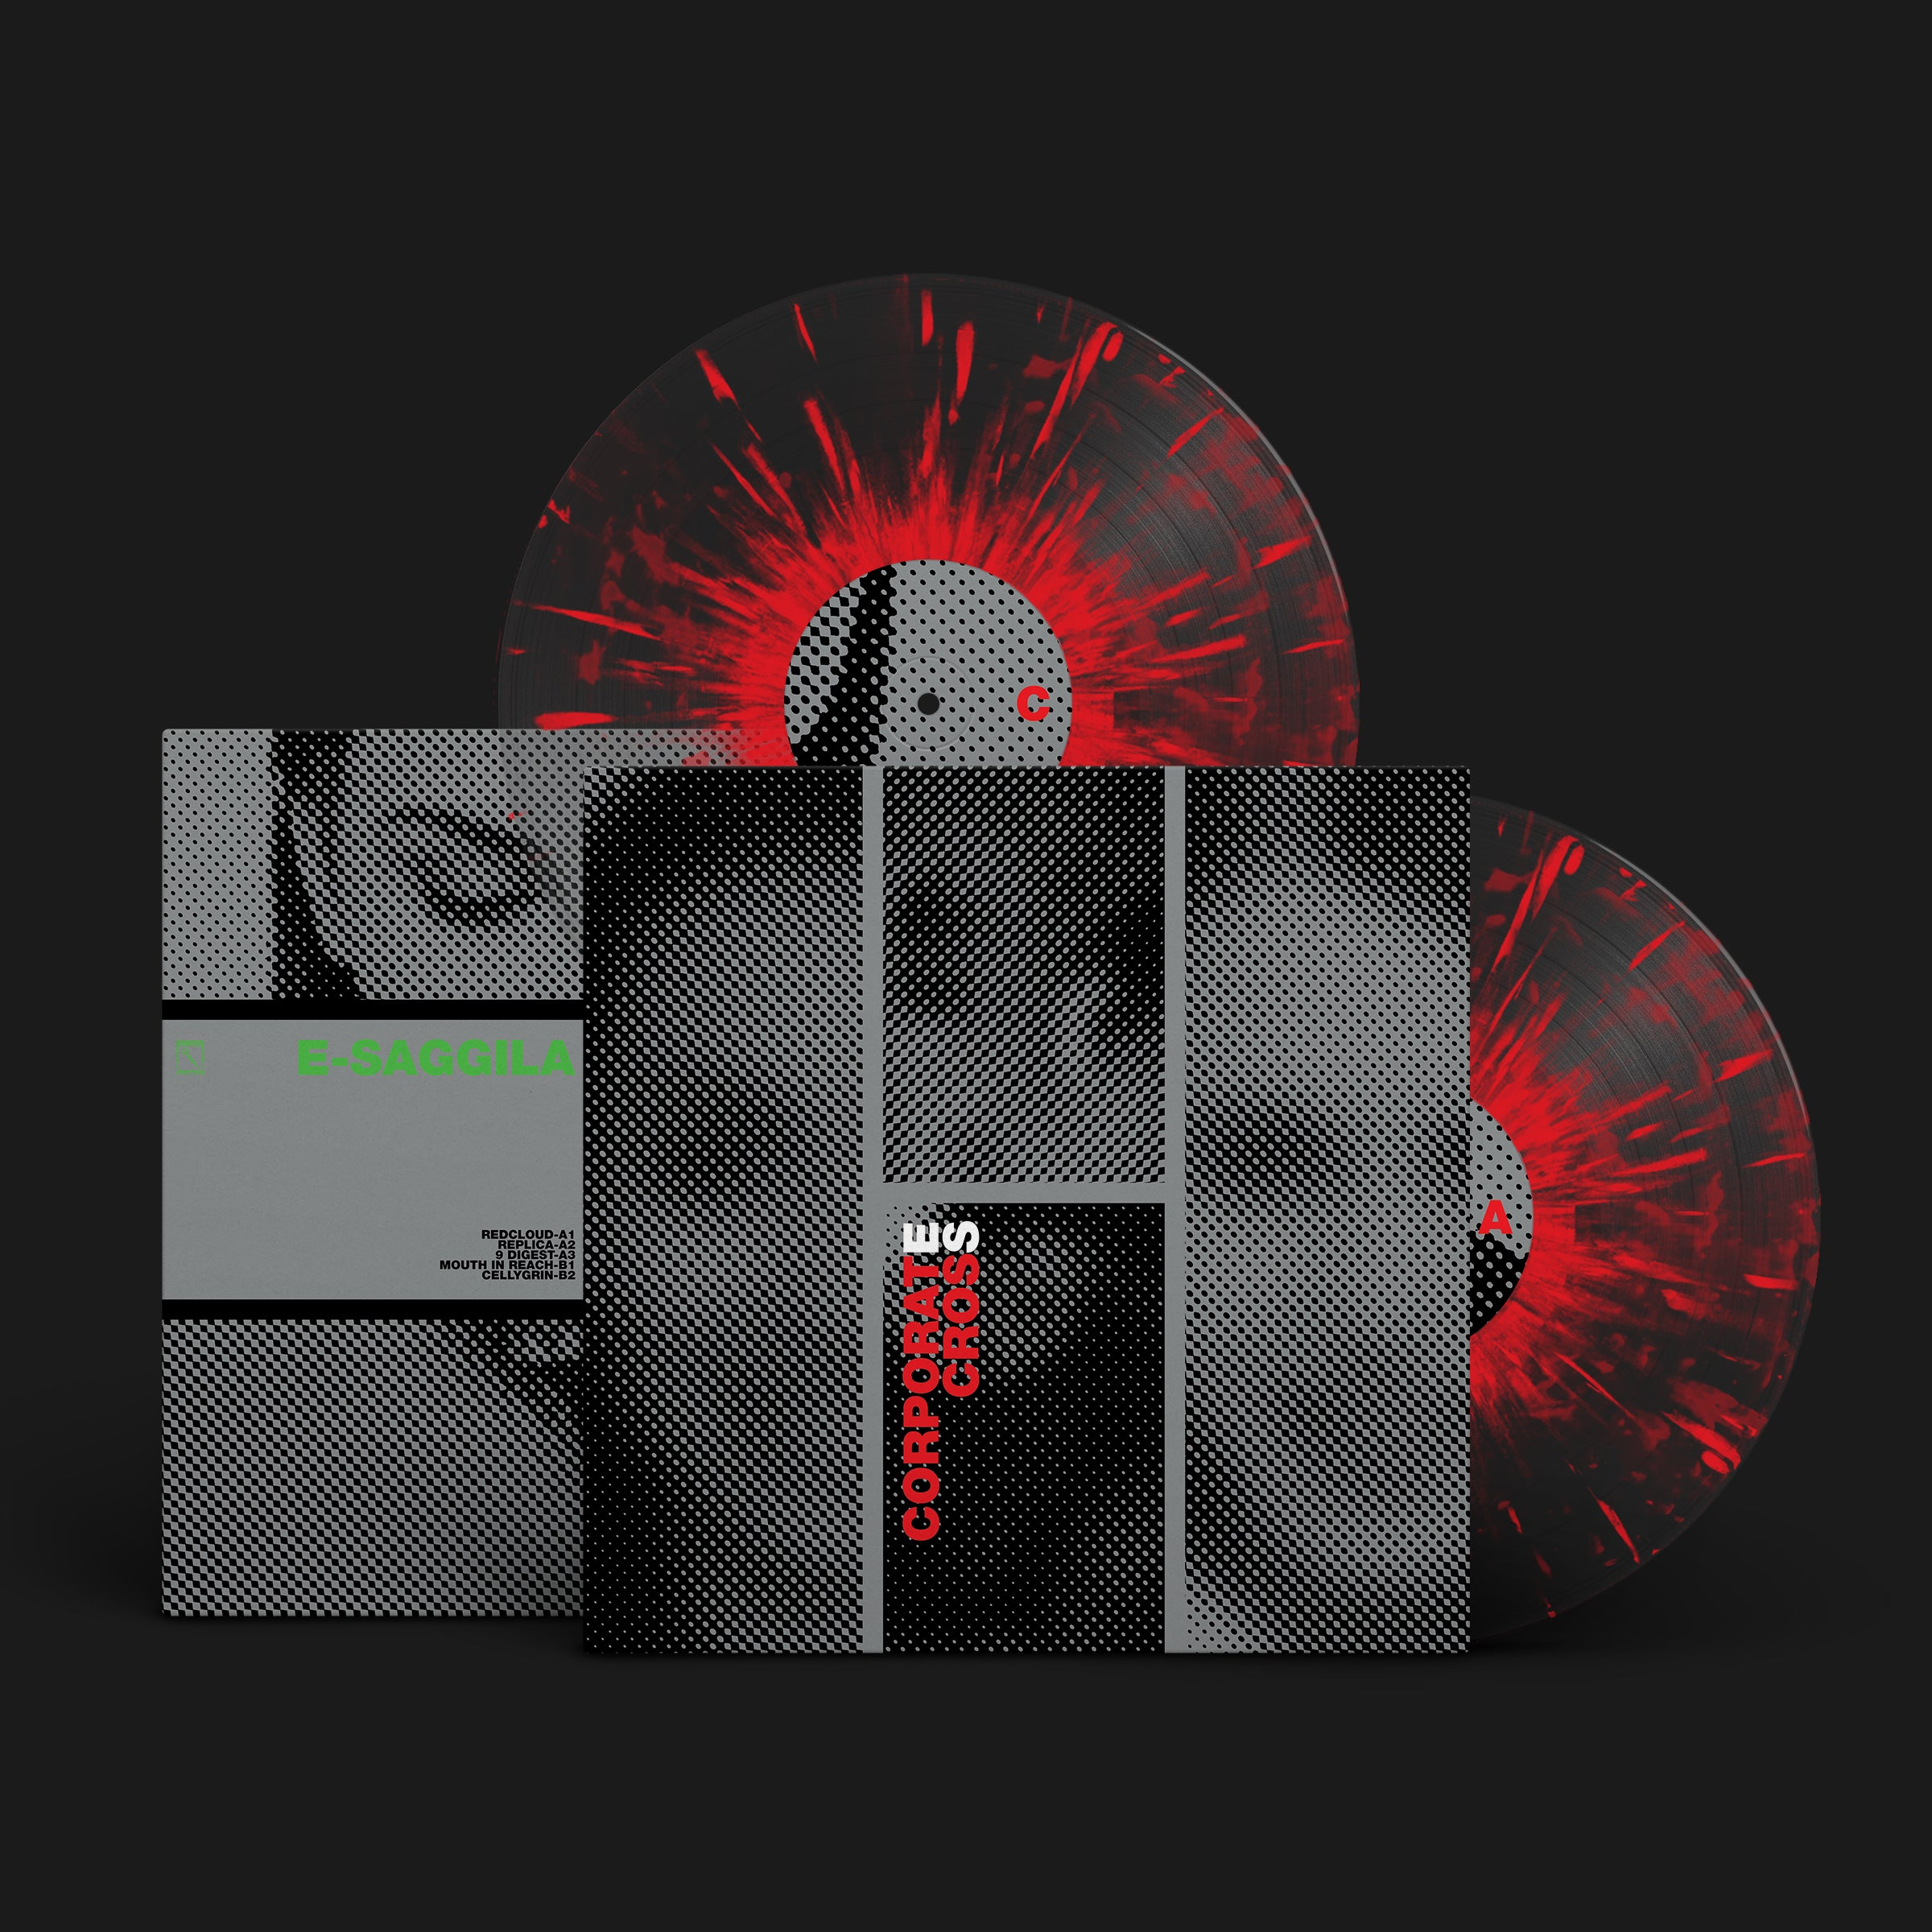 E-SAGGILA | CORPORATE CROSS | 2XLP CLEAR WITH RED SPLATTER VINYL